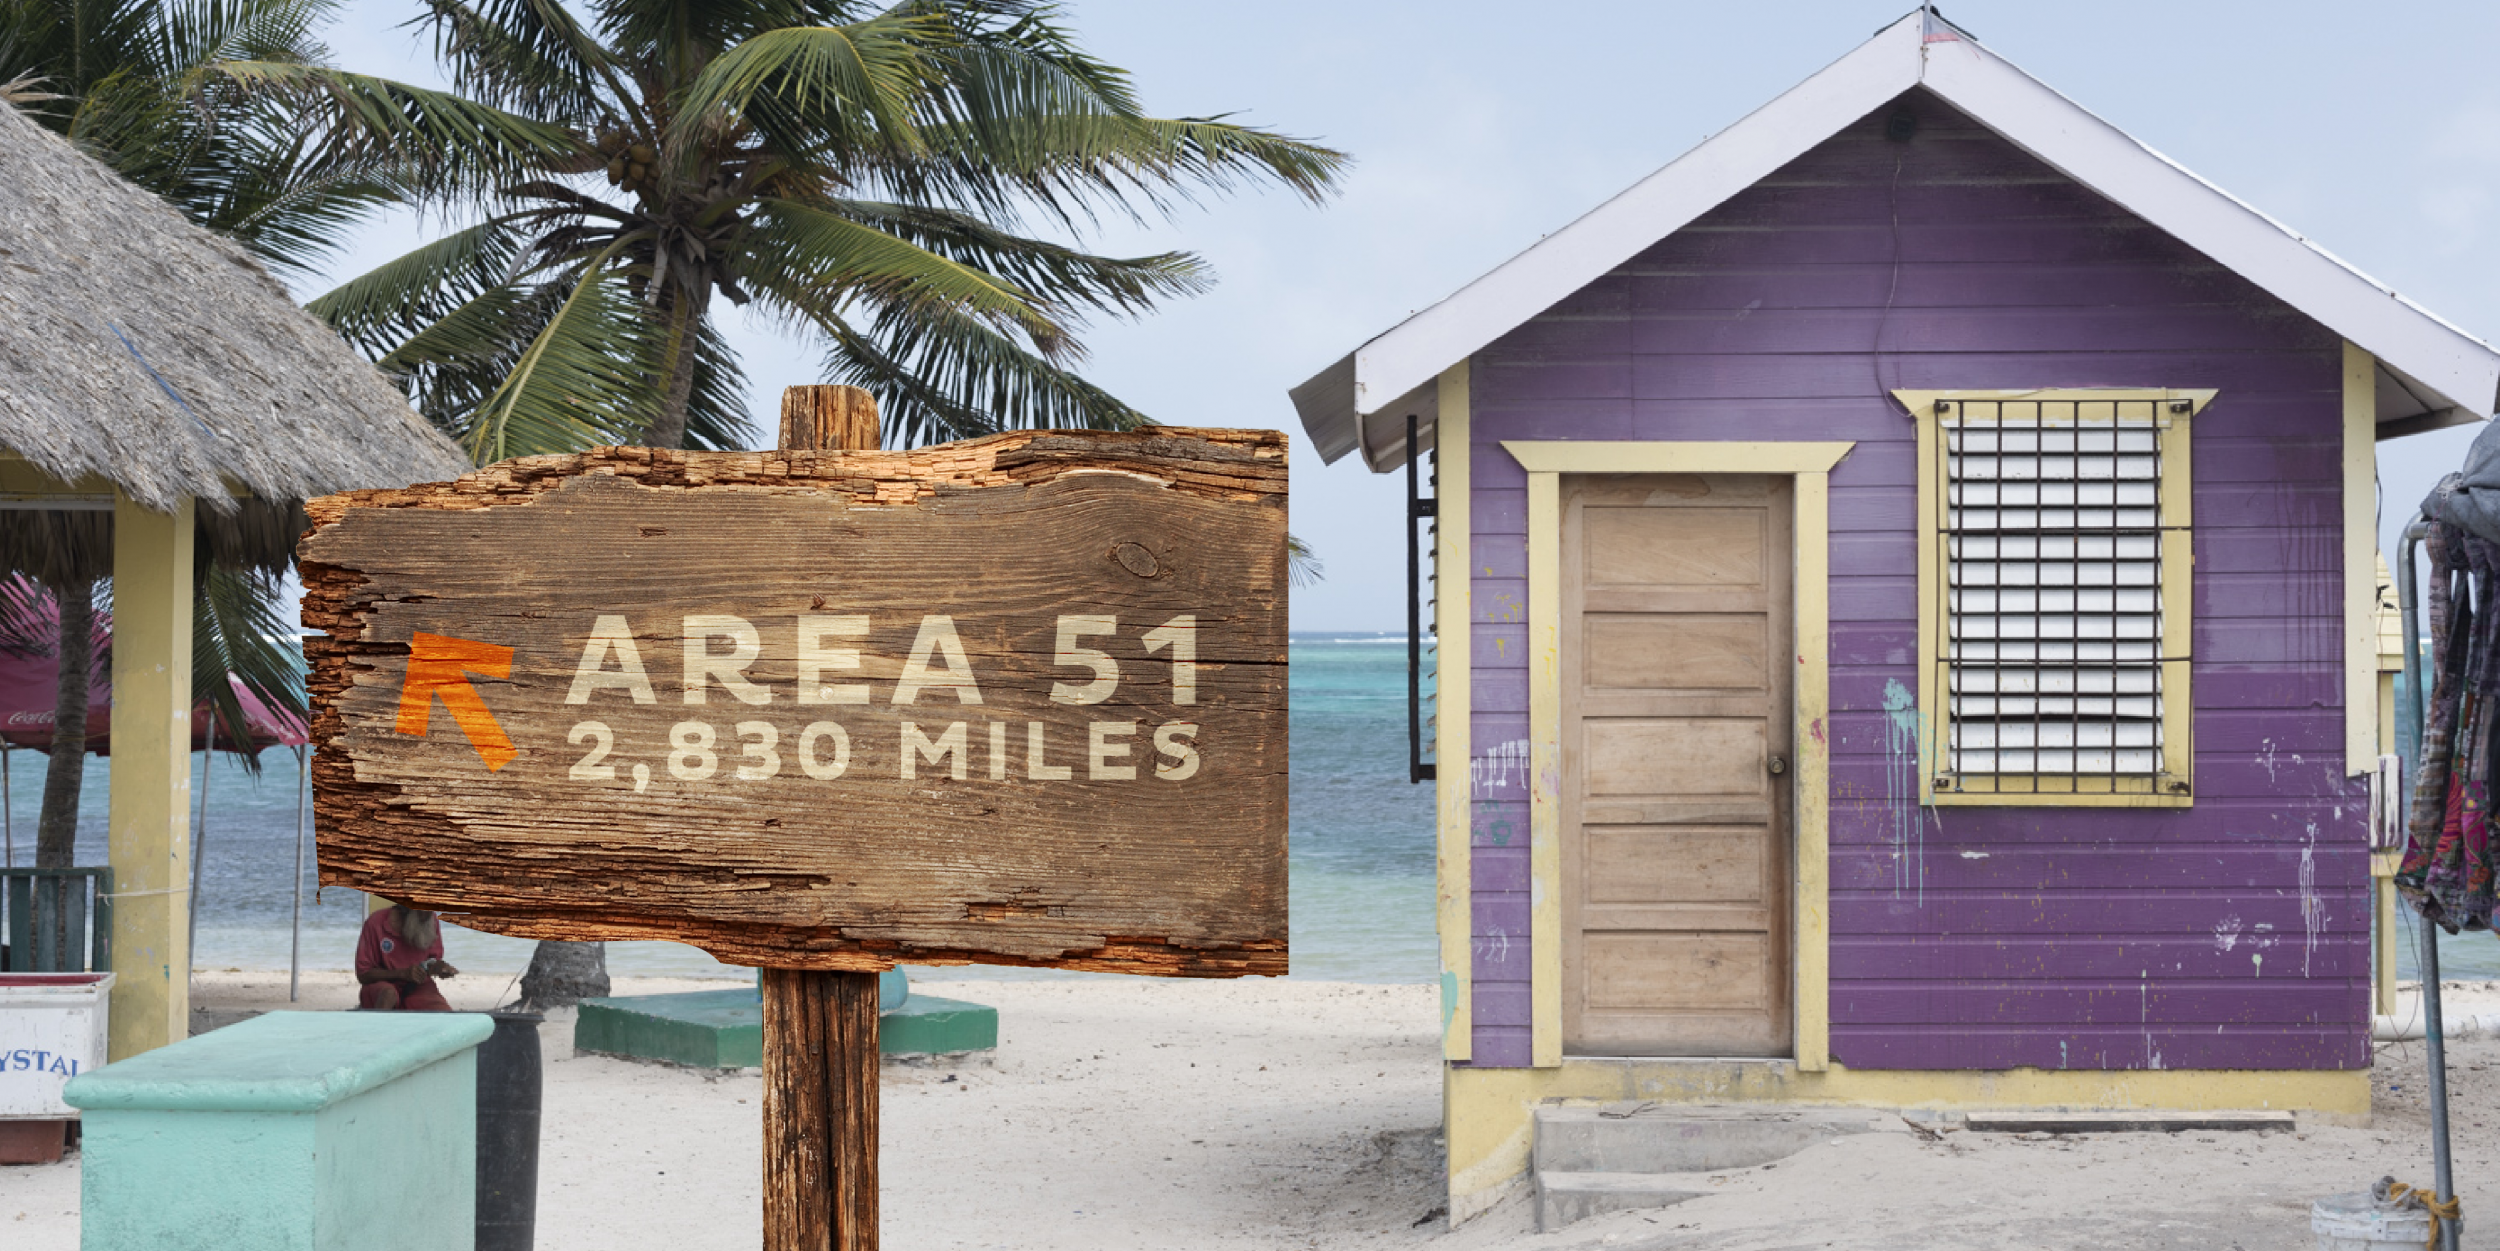 Belize Offers Free Vacations To Residents of Rachel, Nevada, During Area 51 'Raid'